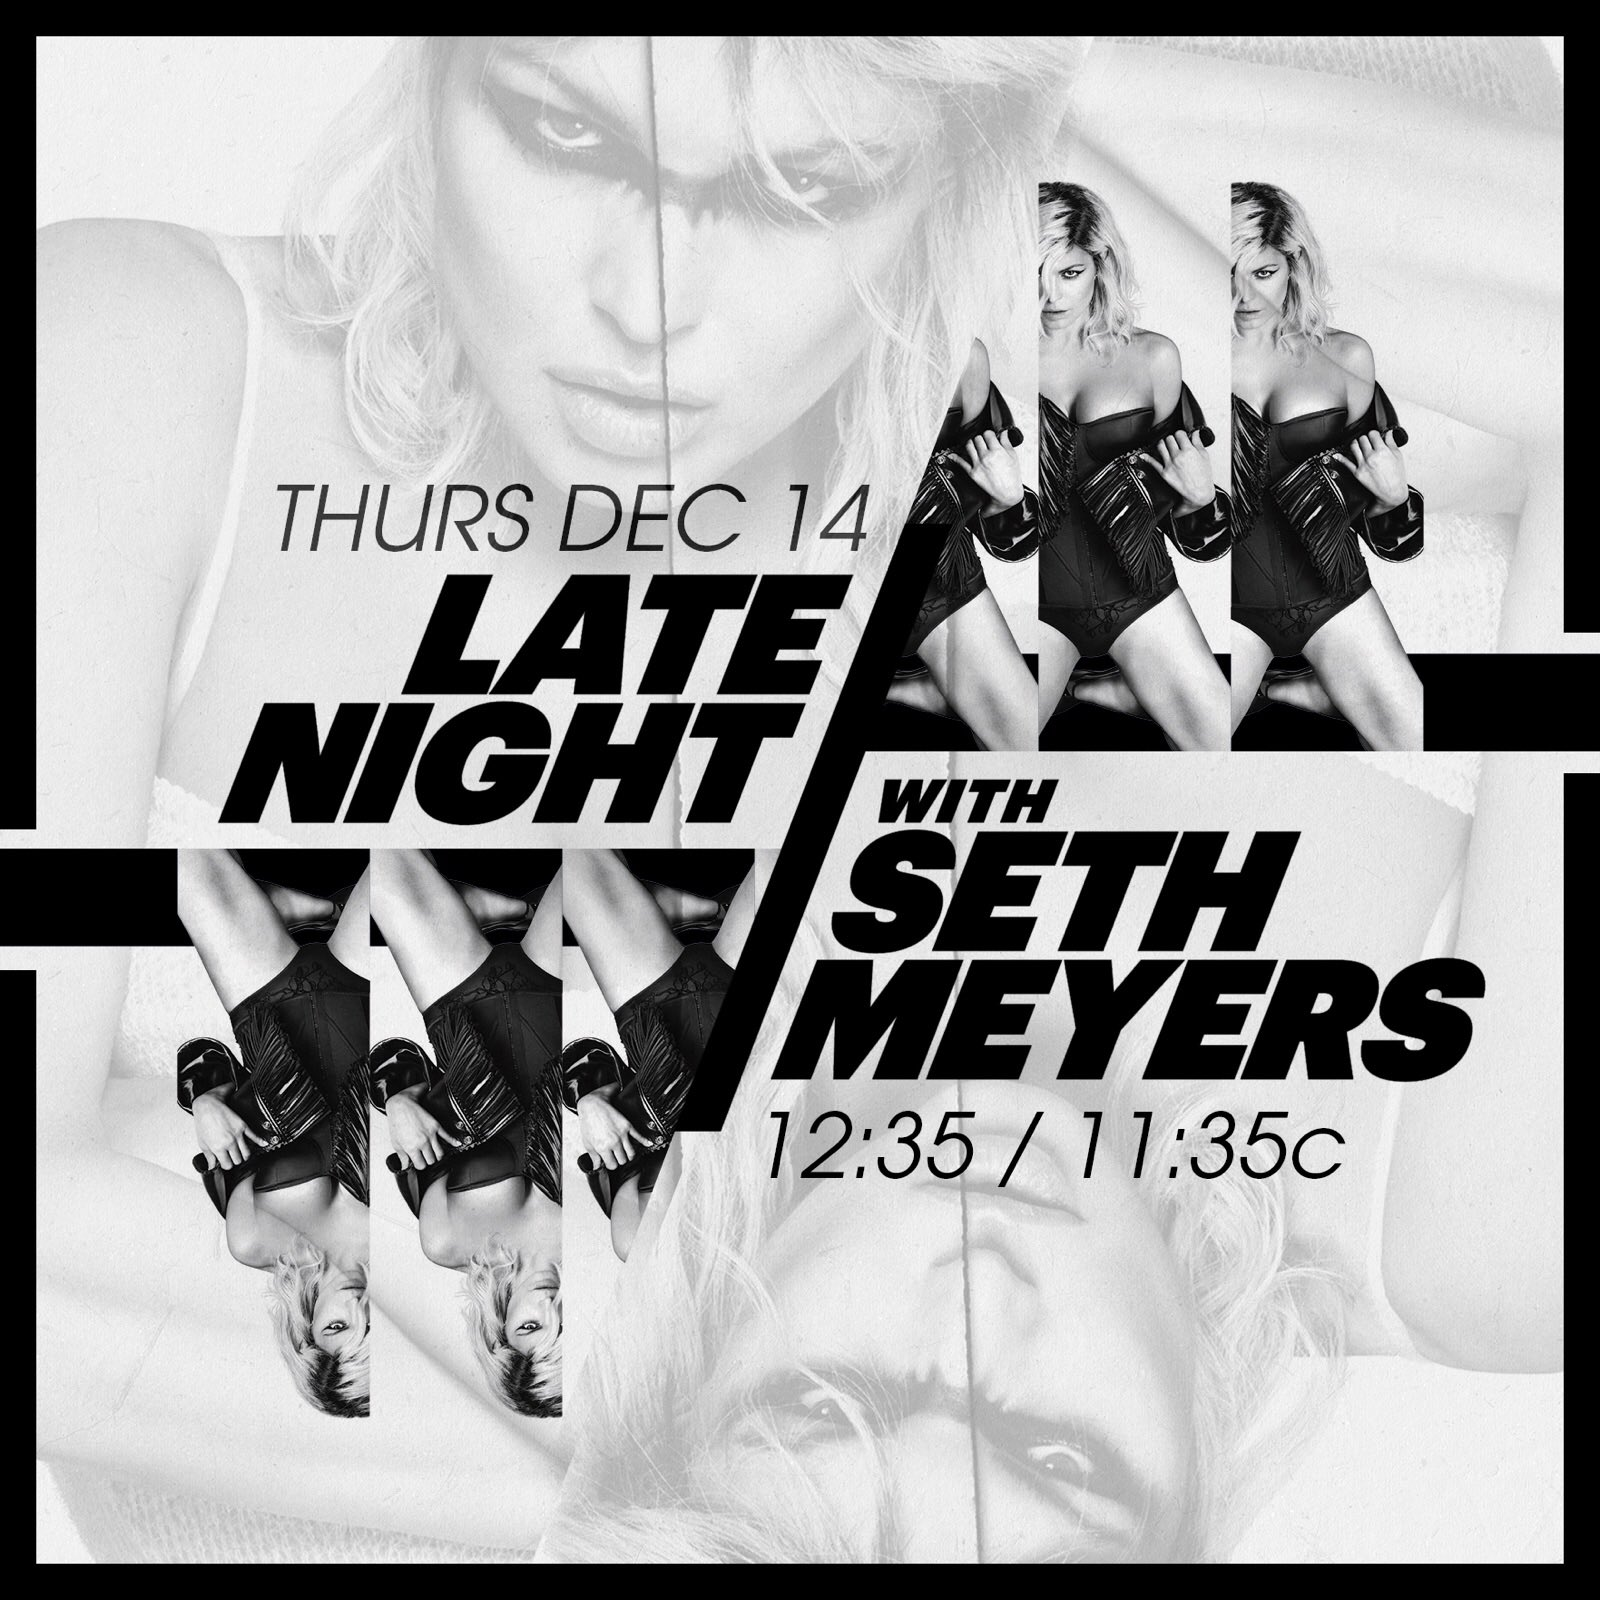 tonight! @LateNightSeth https://t.co/CacGAdybWN